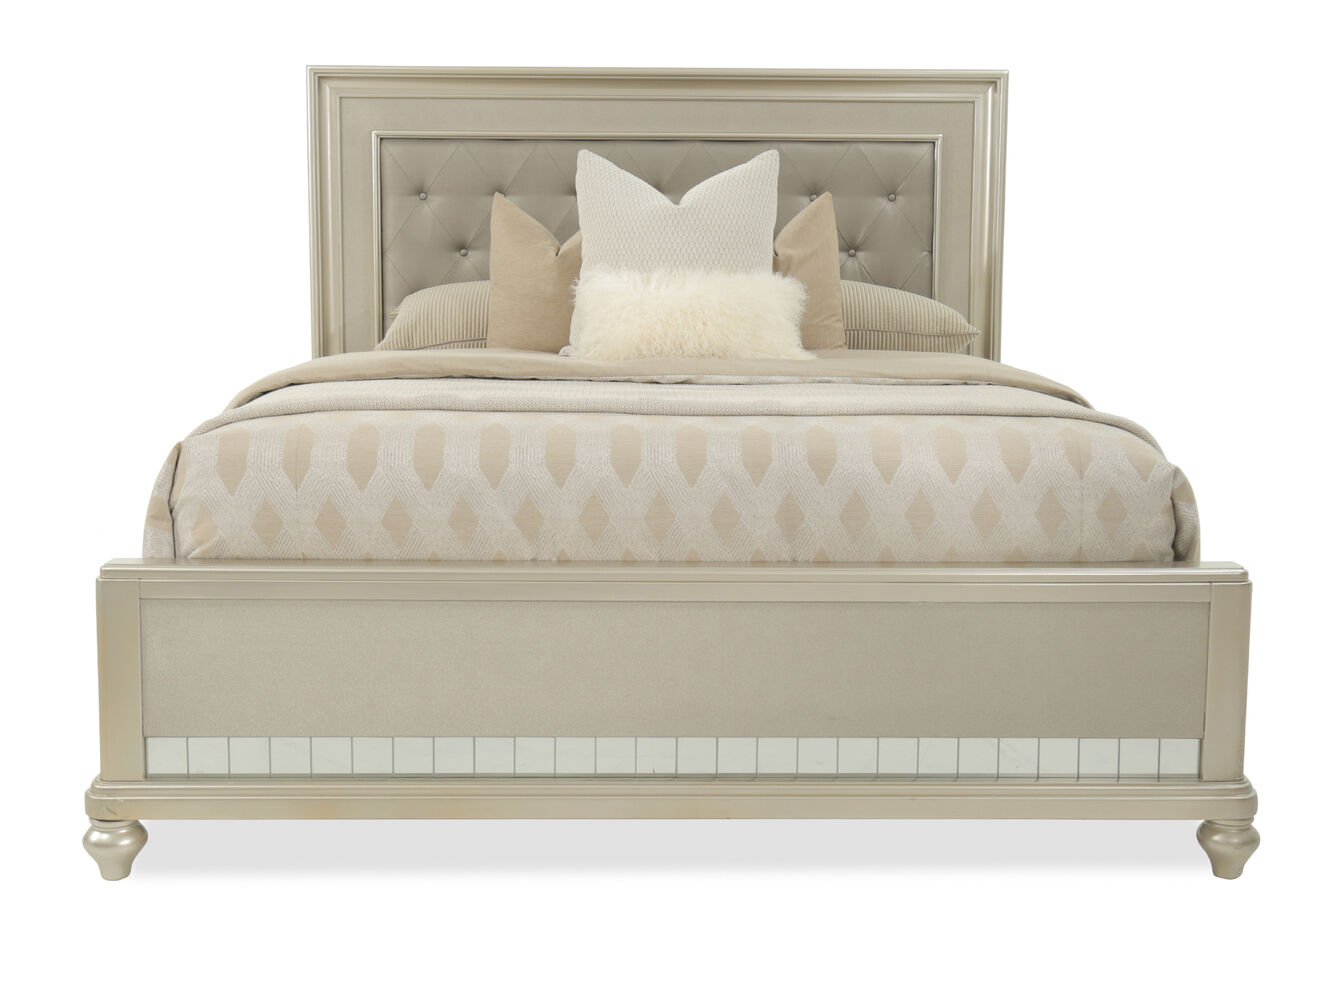 66 Quot Transitional Button Tufted Panel Bed In Brown Mathis